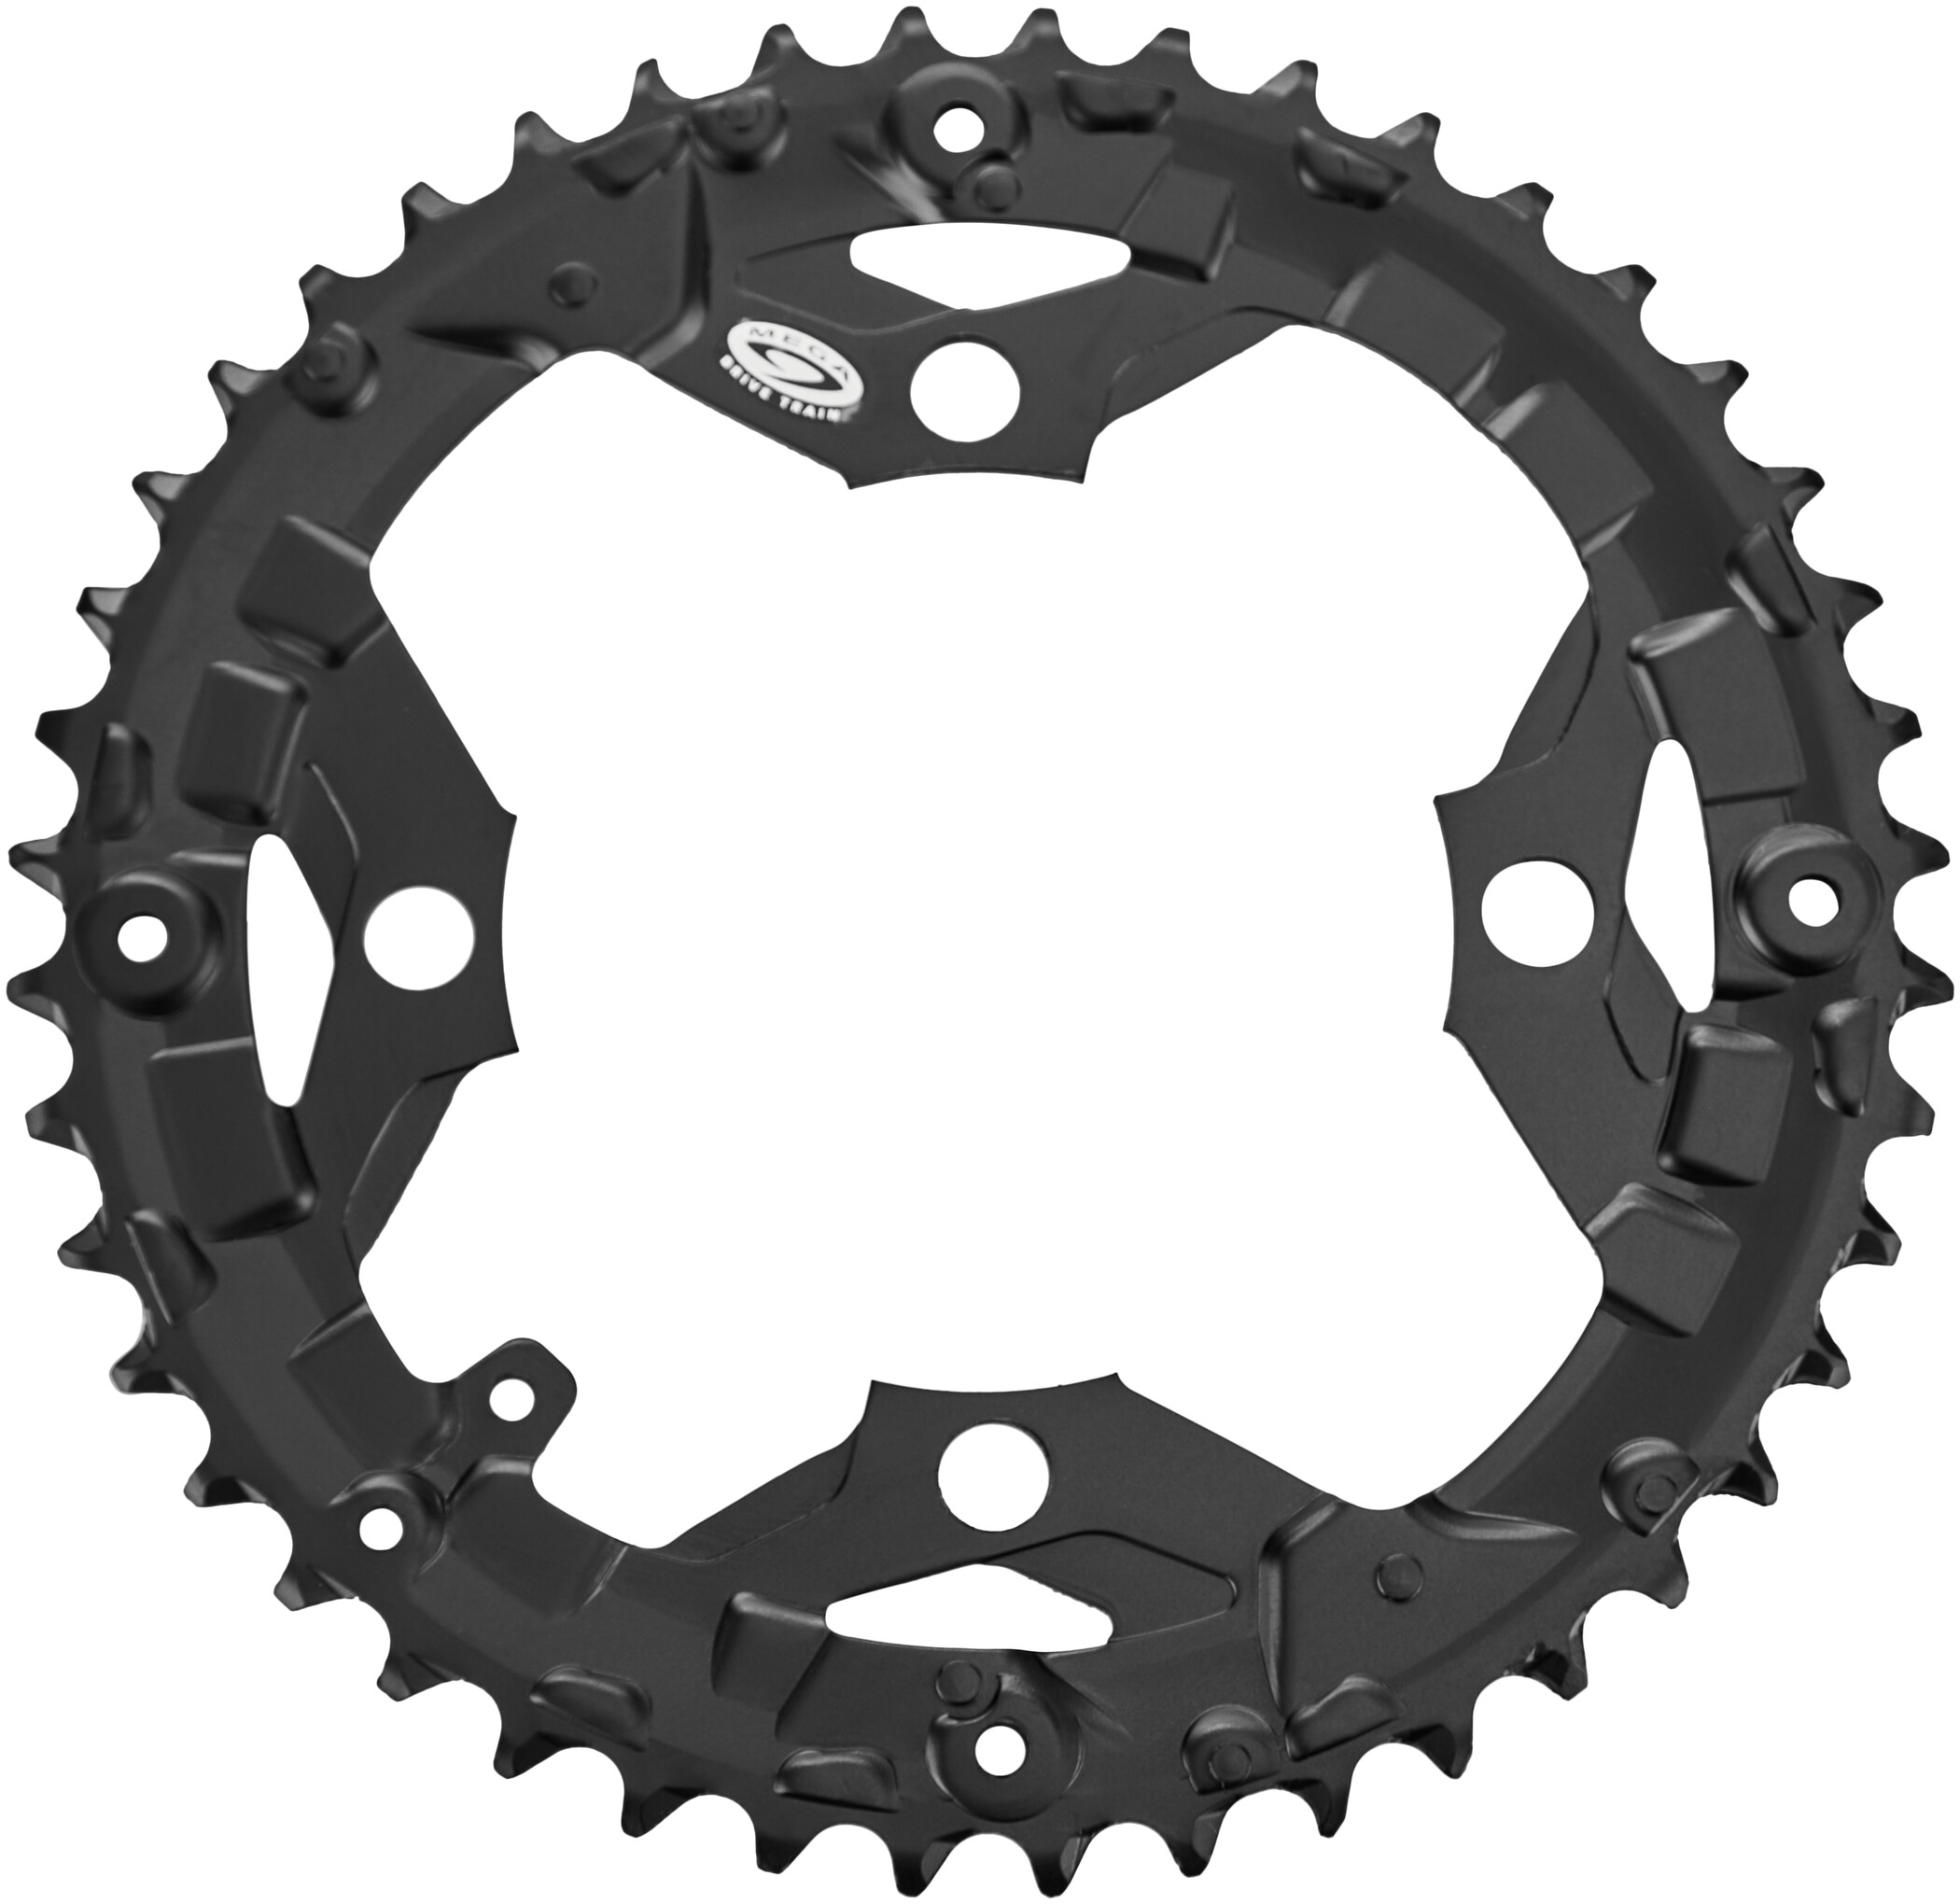 Shimano FC-MT300 Chainring 9-speed for KSR, black (2019) | chainrings_component